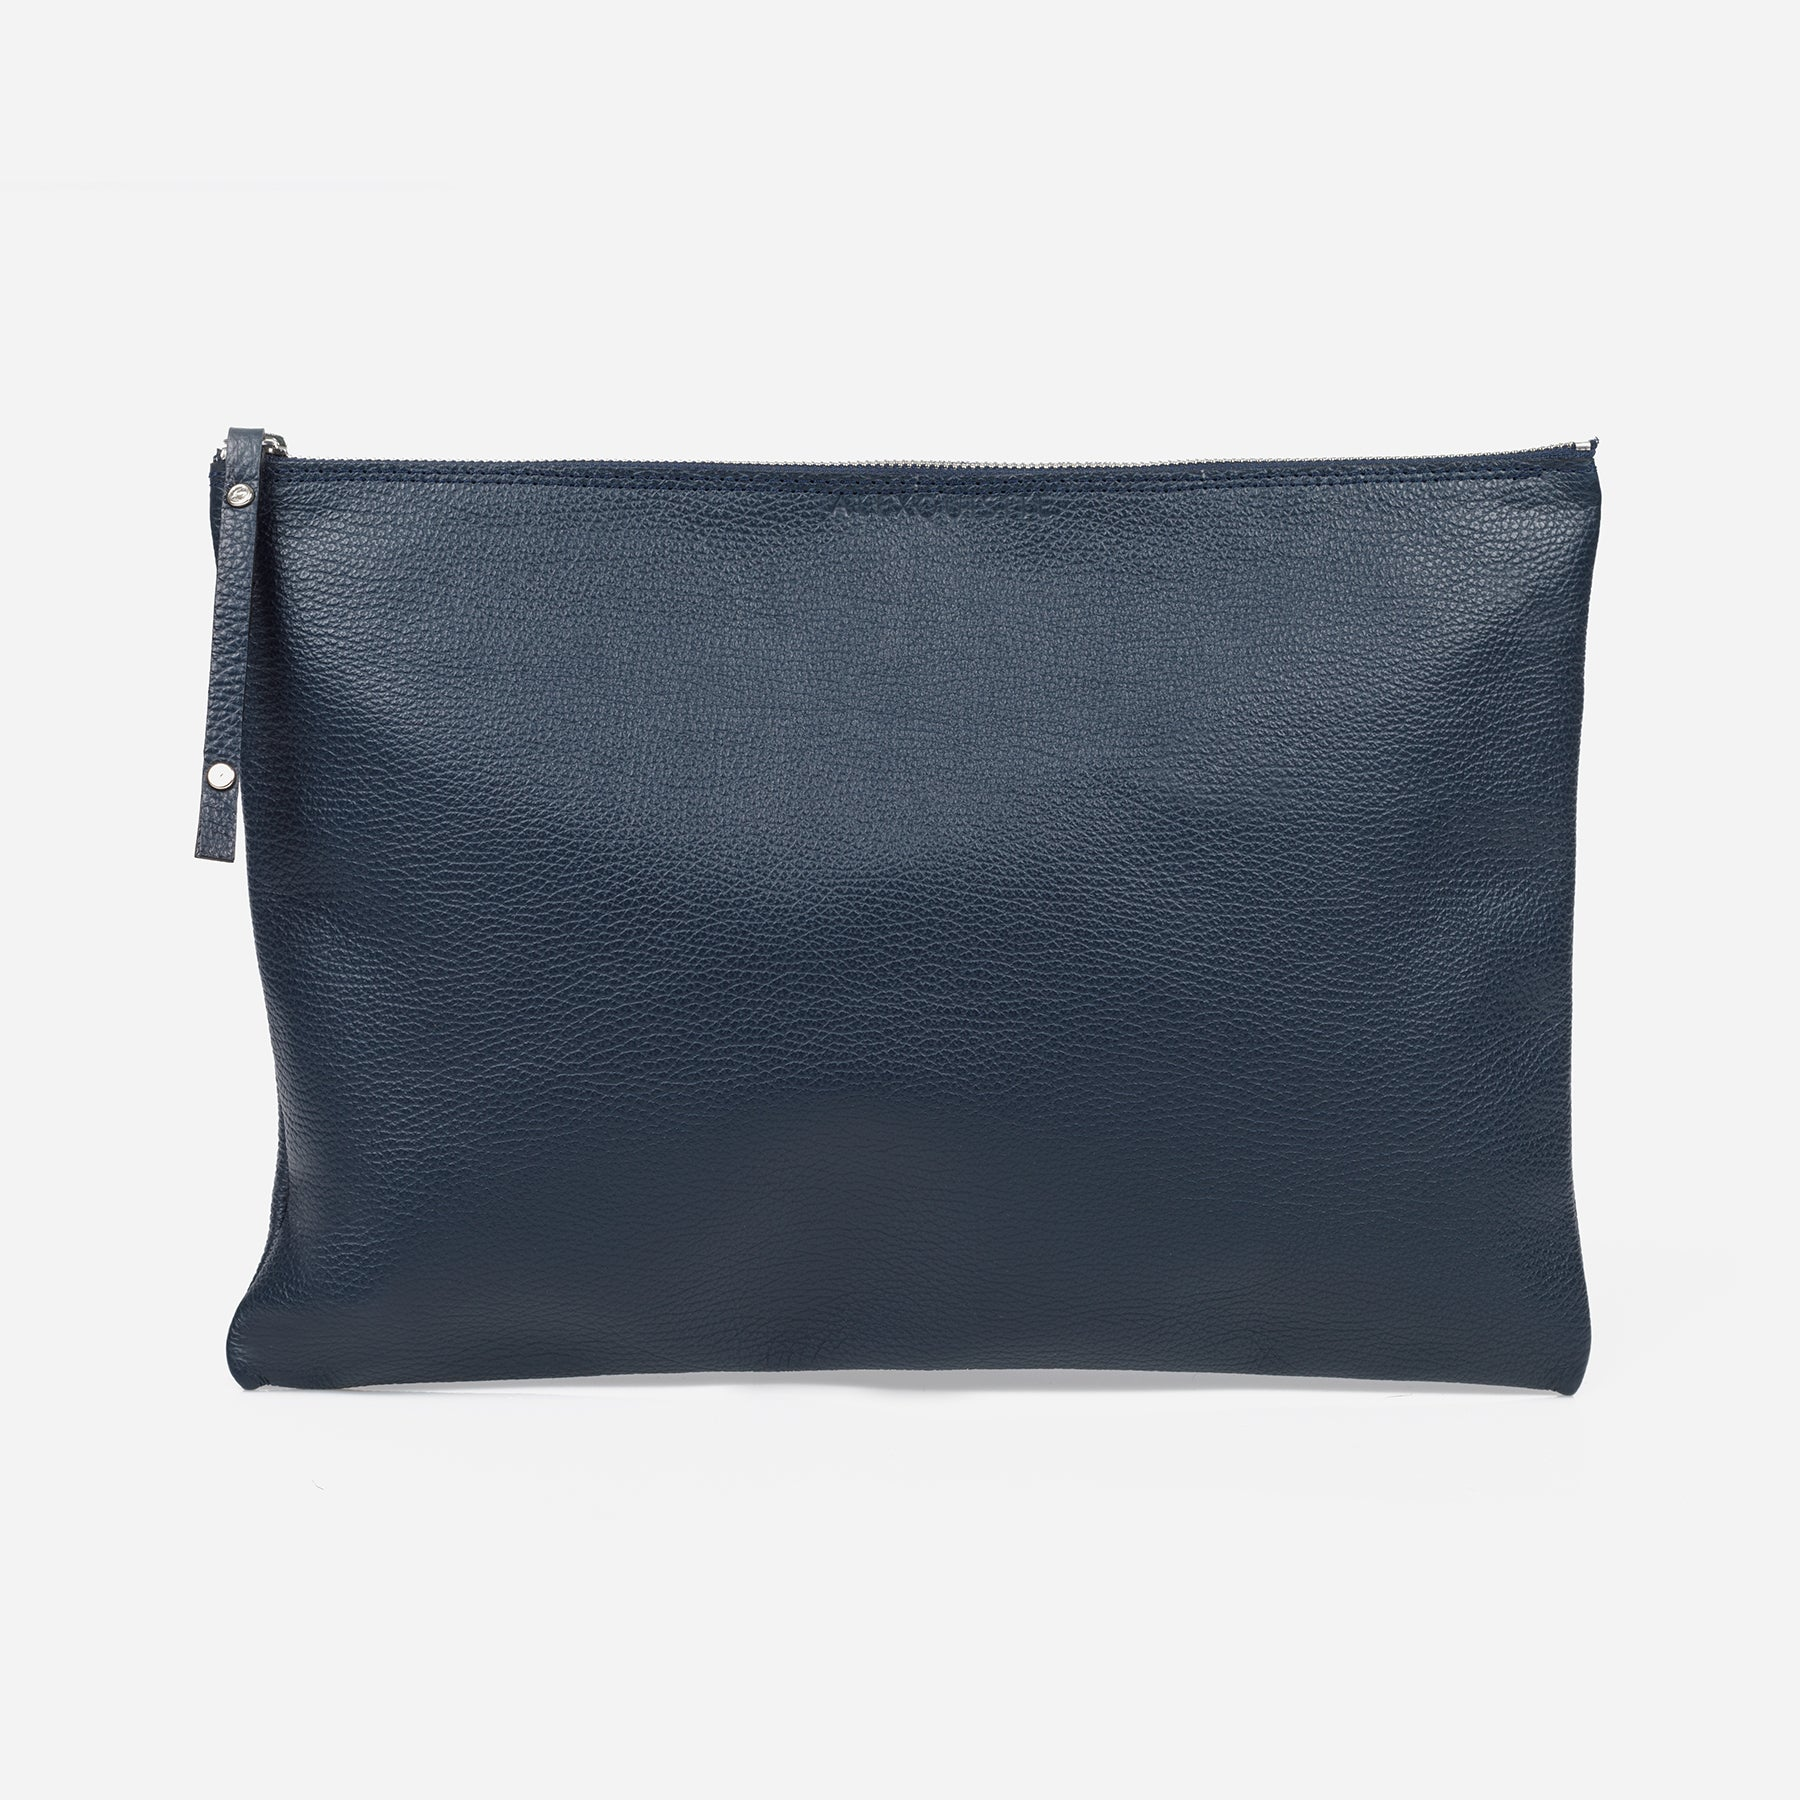 Pure Leather Pouch Bag - Midnight by Alexquisite on OOSTOR.com